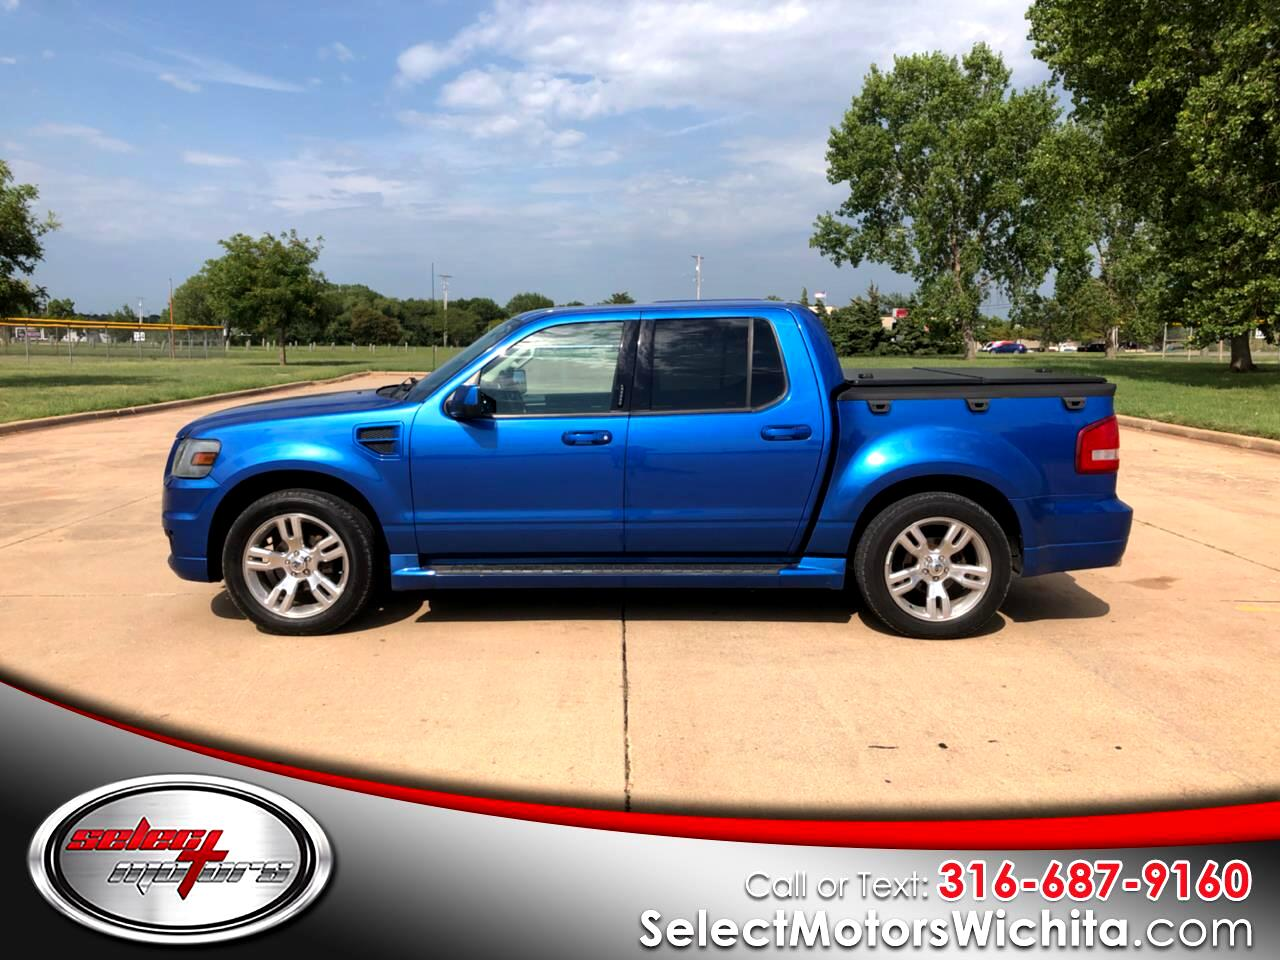 2010 Ford Explorer Sport Trac AWD 4dr Limited